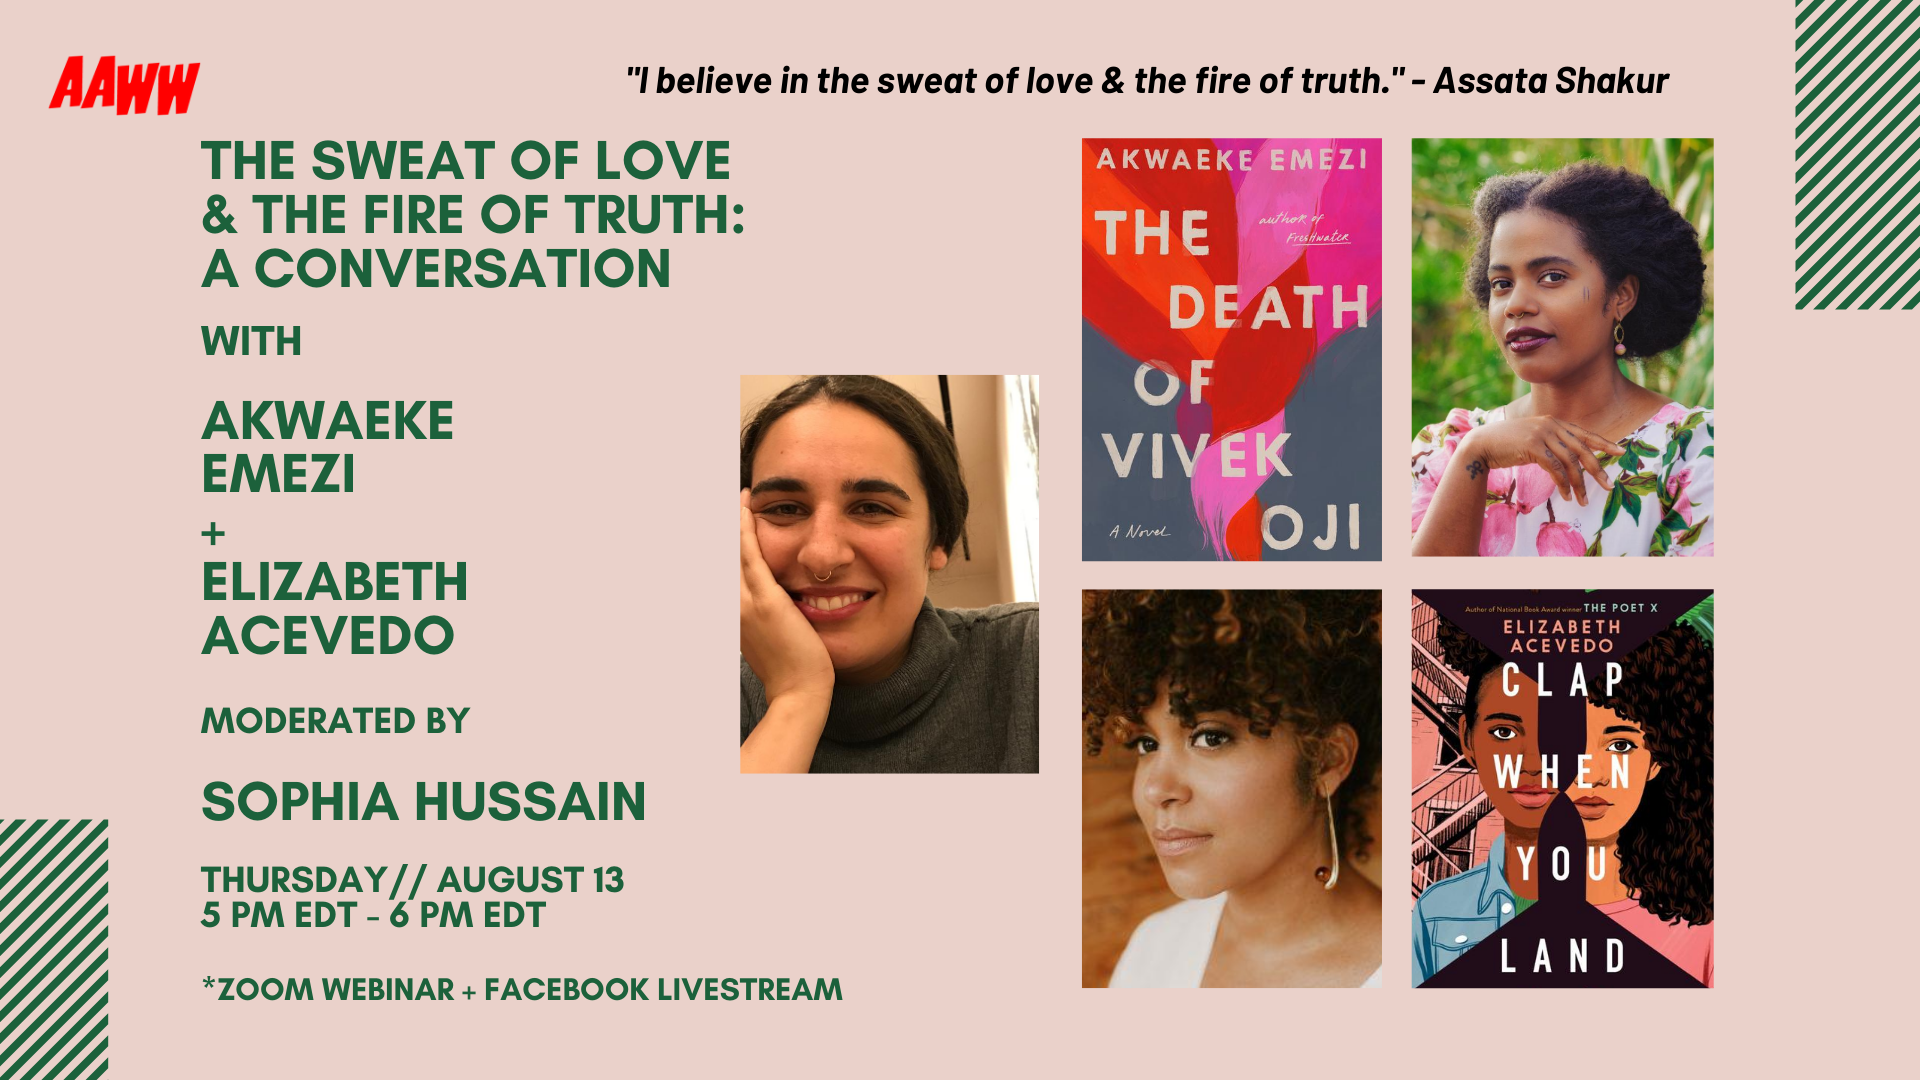 aaww.org: The Sweat of Love & the Fire of Truth: A Conversation